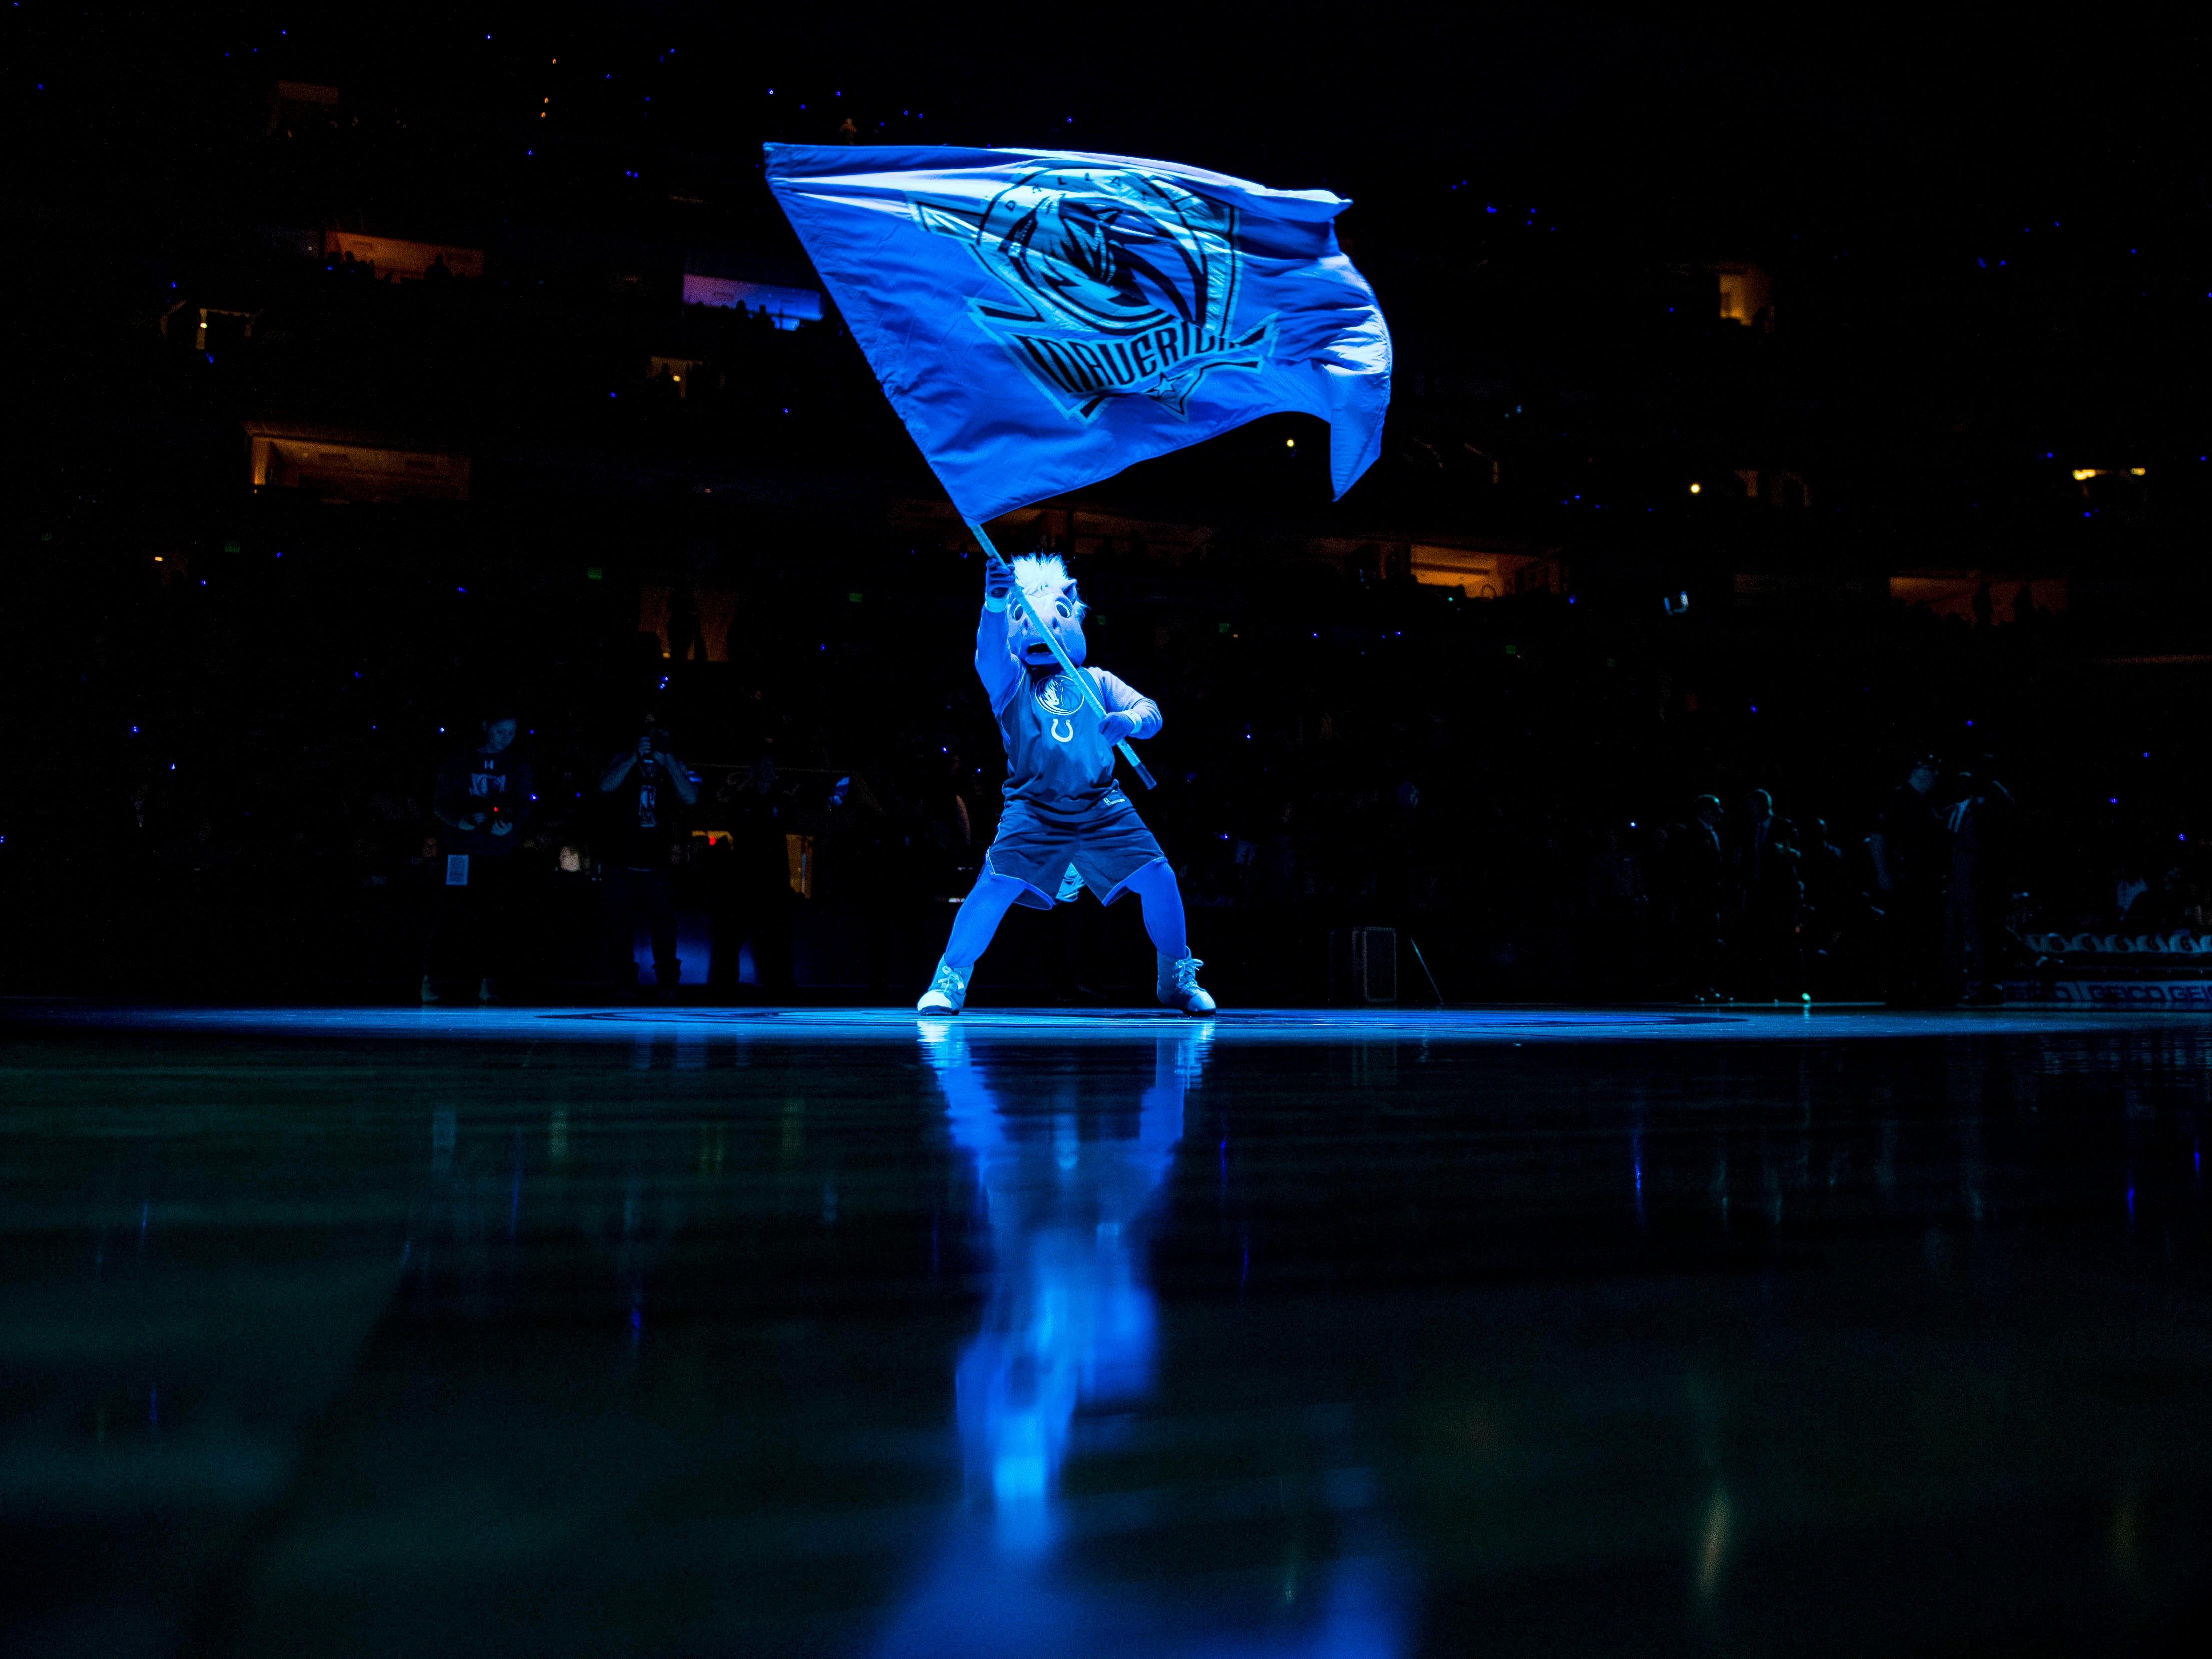 Dec. 10: The Mavericks mascot flies the team flag before a game against the Magic.